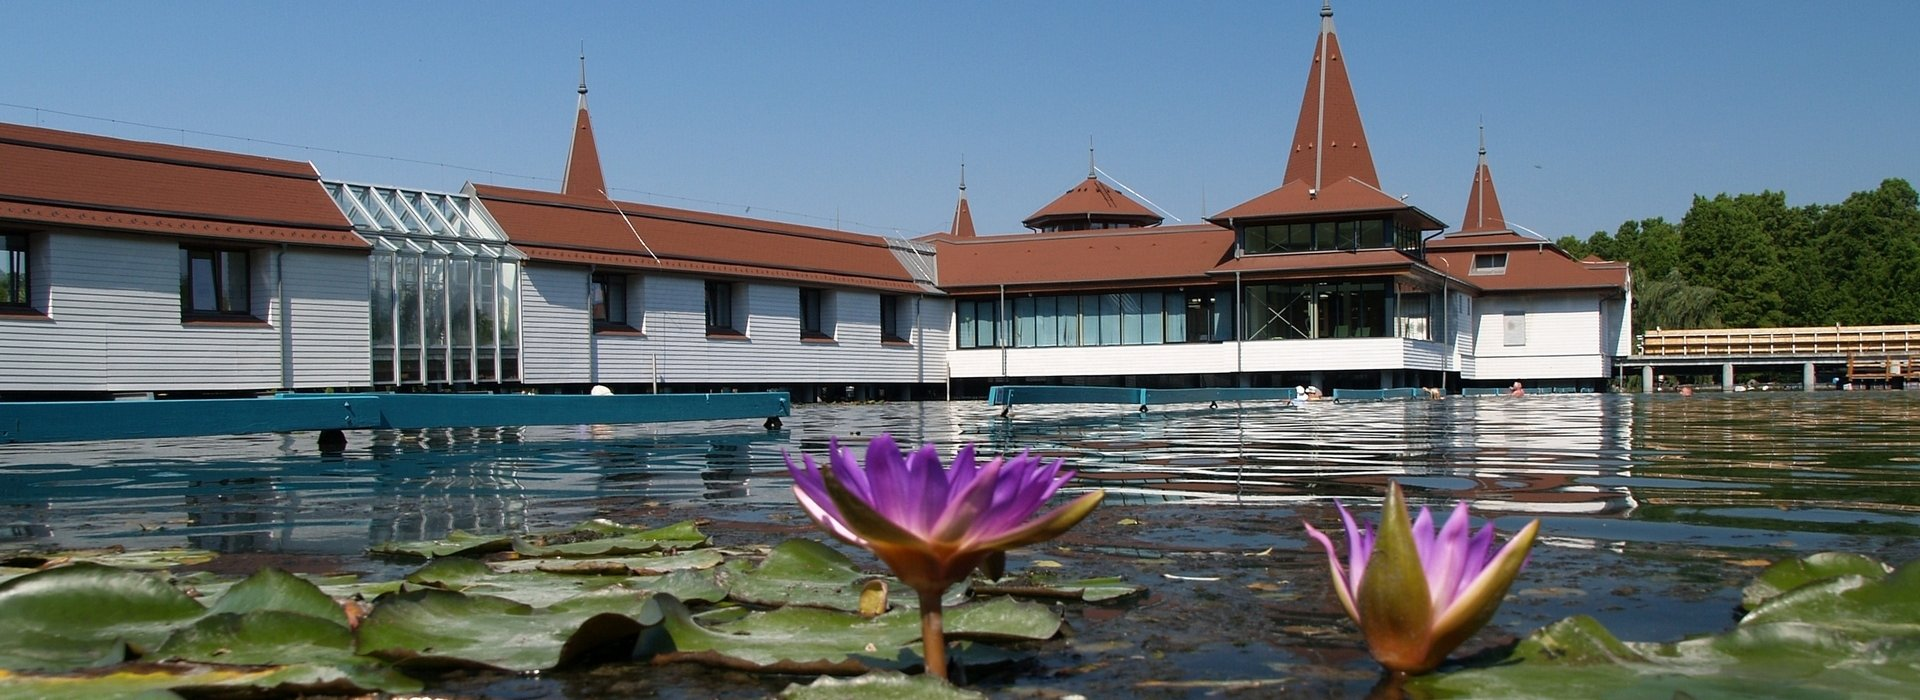 Thermal Bath of Leányfalu